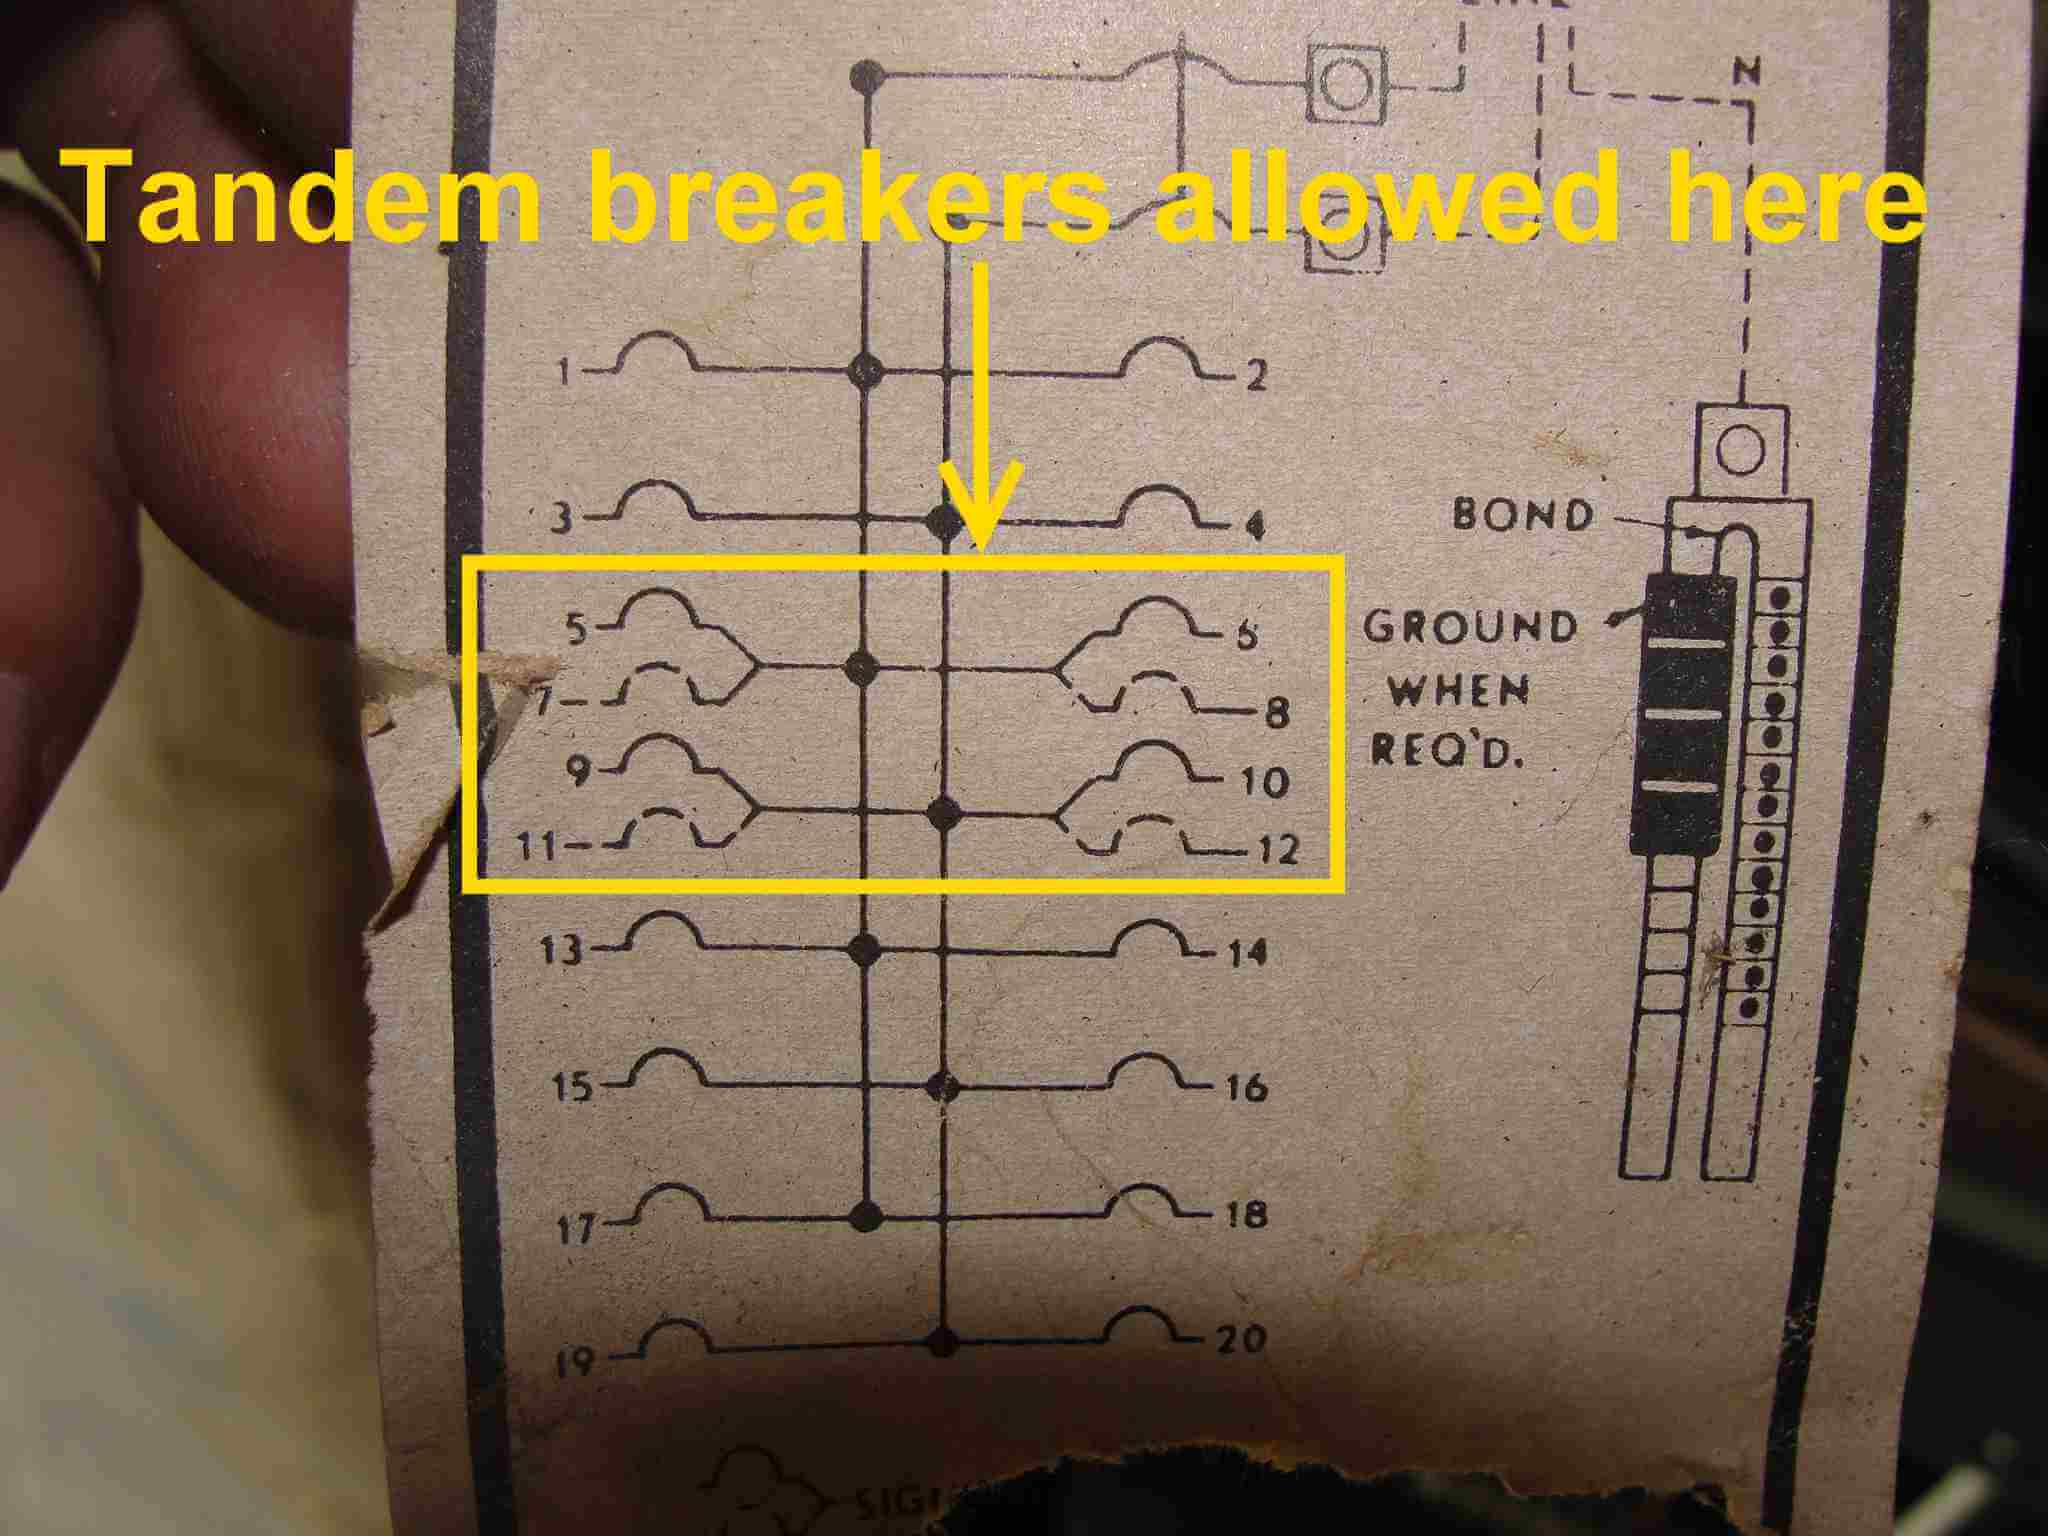 How To Know When Tandem Circuit Breakers Can Be Used Aka Cheater Outdoor 200 Amp Service Panel Wiring Diagram Panelboard 2